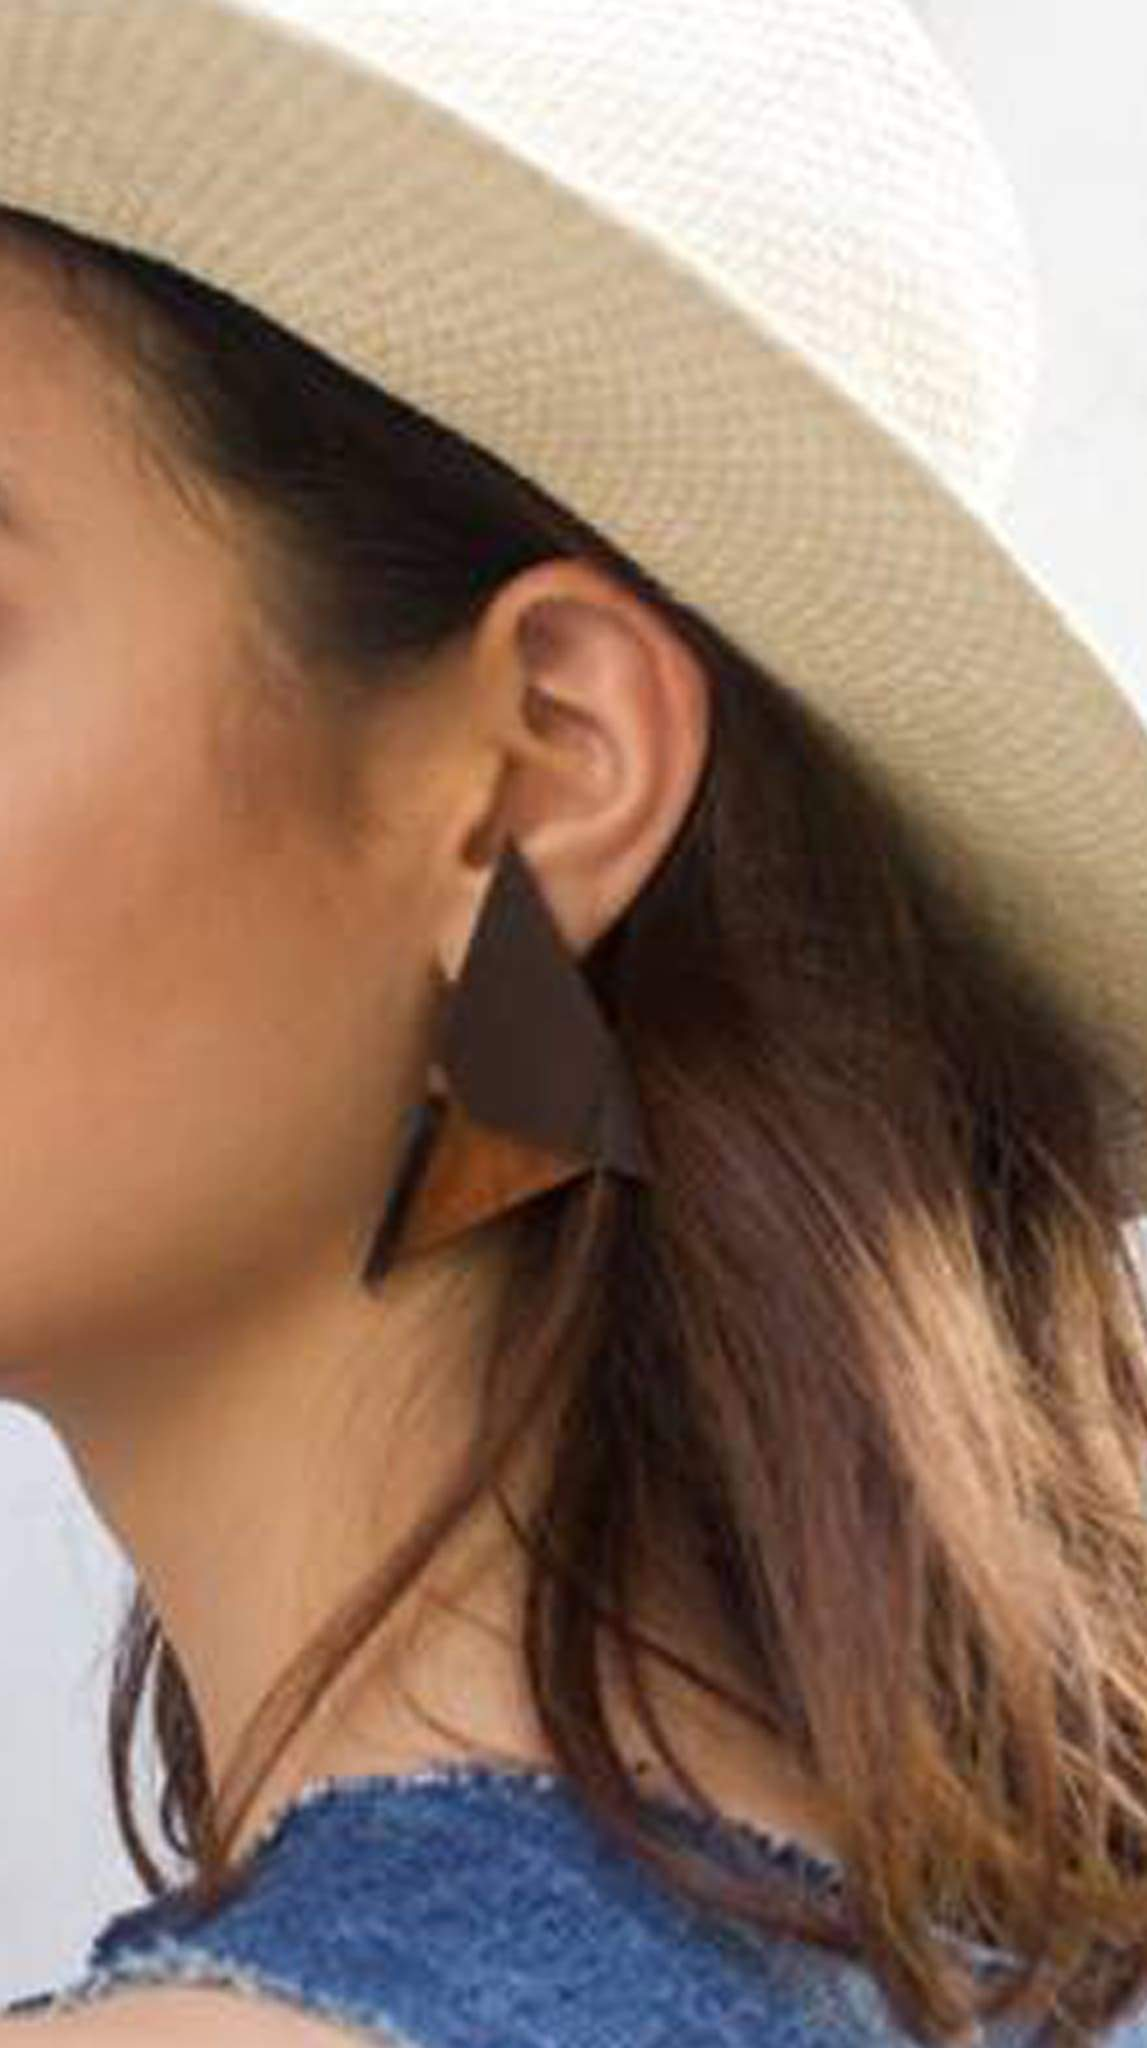 Prisma Wood and Acrylic Ruby Davila-Rendon Earrings by Ruby Dávila-Rendón Made in Puerto Rico | Nineteenth Amendment